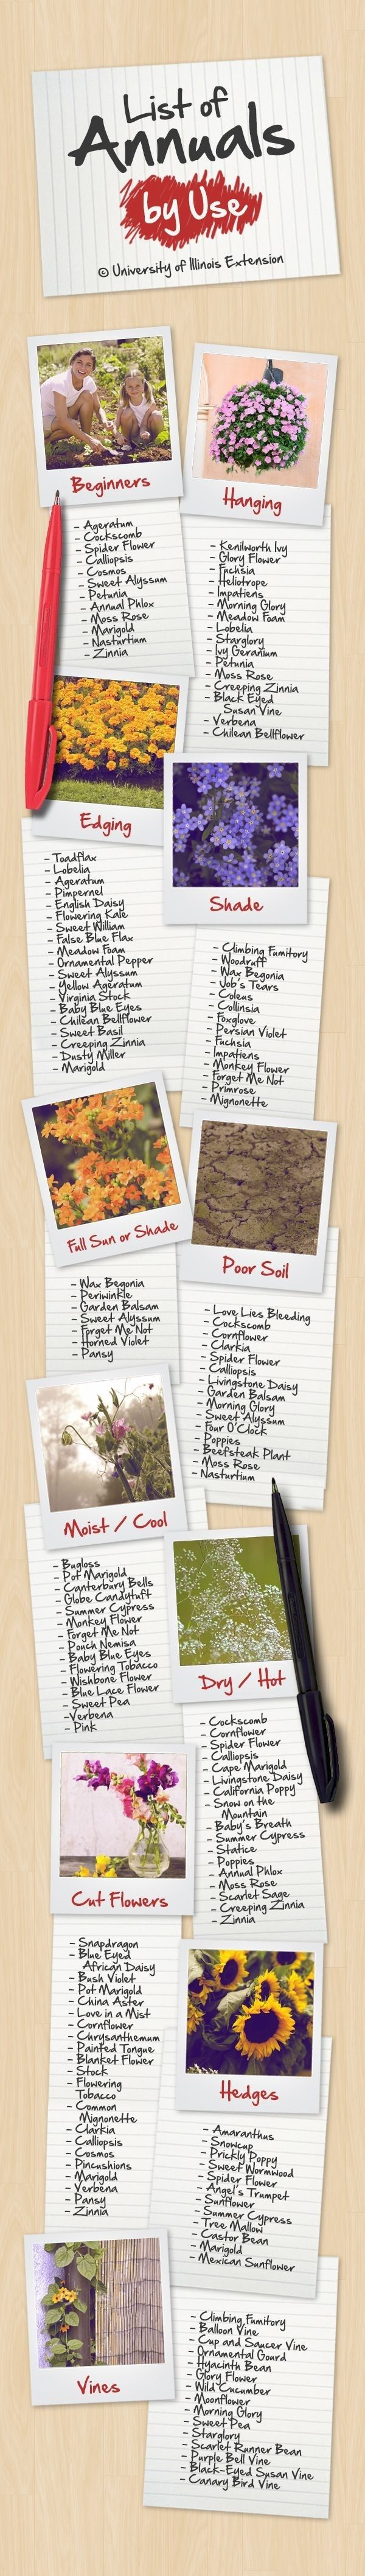 Here's a list of how you can use annuals (plants that you need to replant every year) in your garden. | 23 Diagrams That Make Gardening So Much Easier